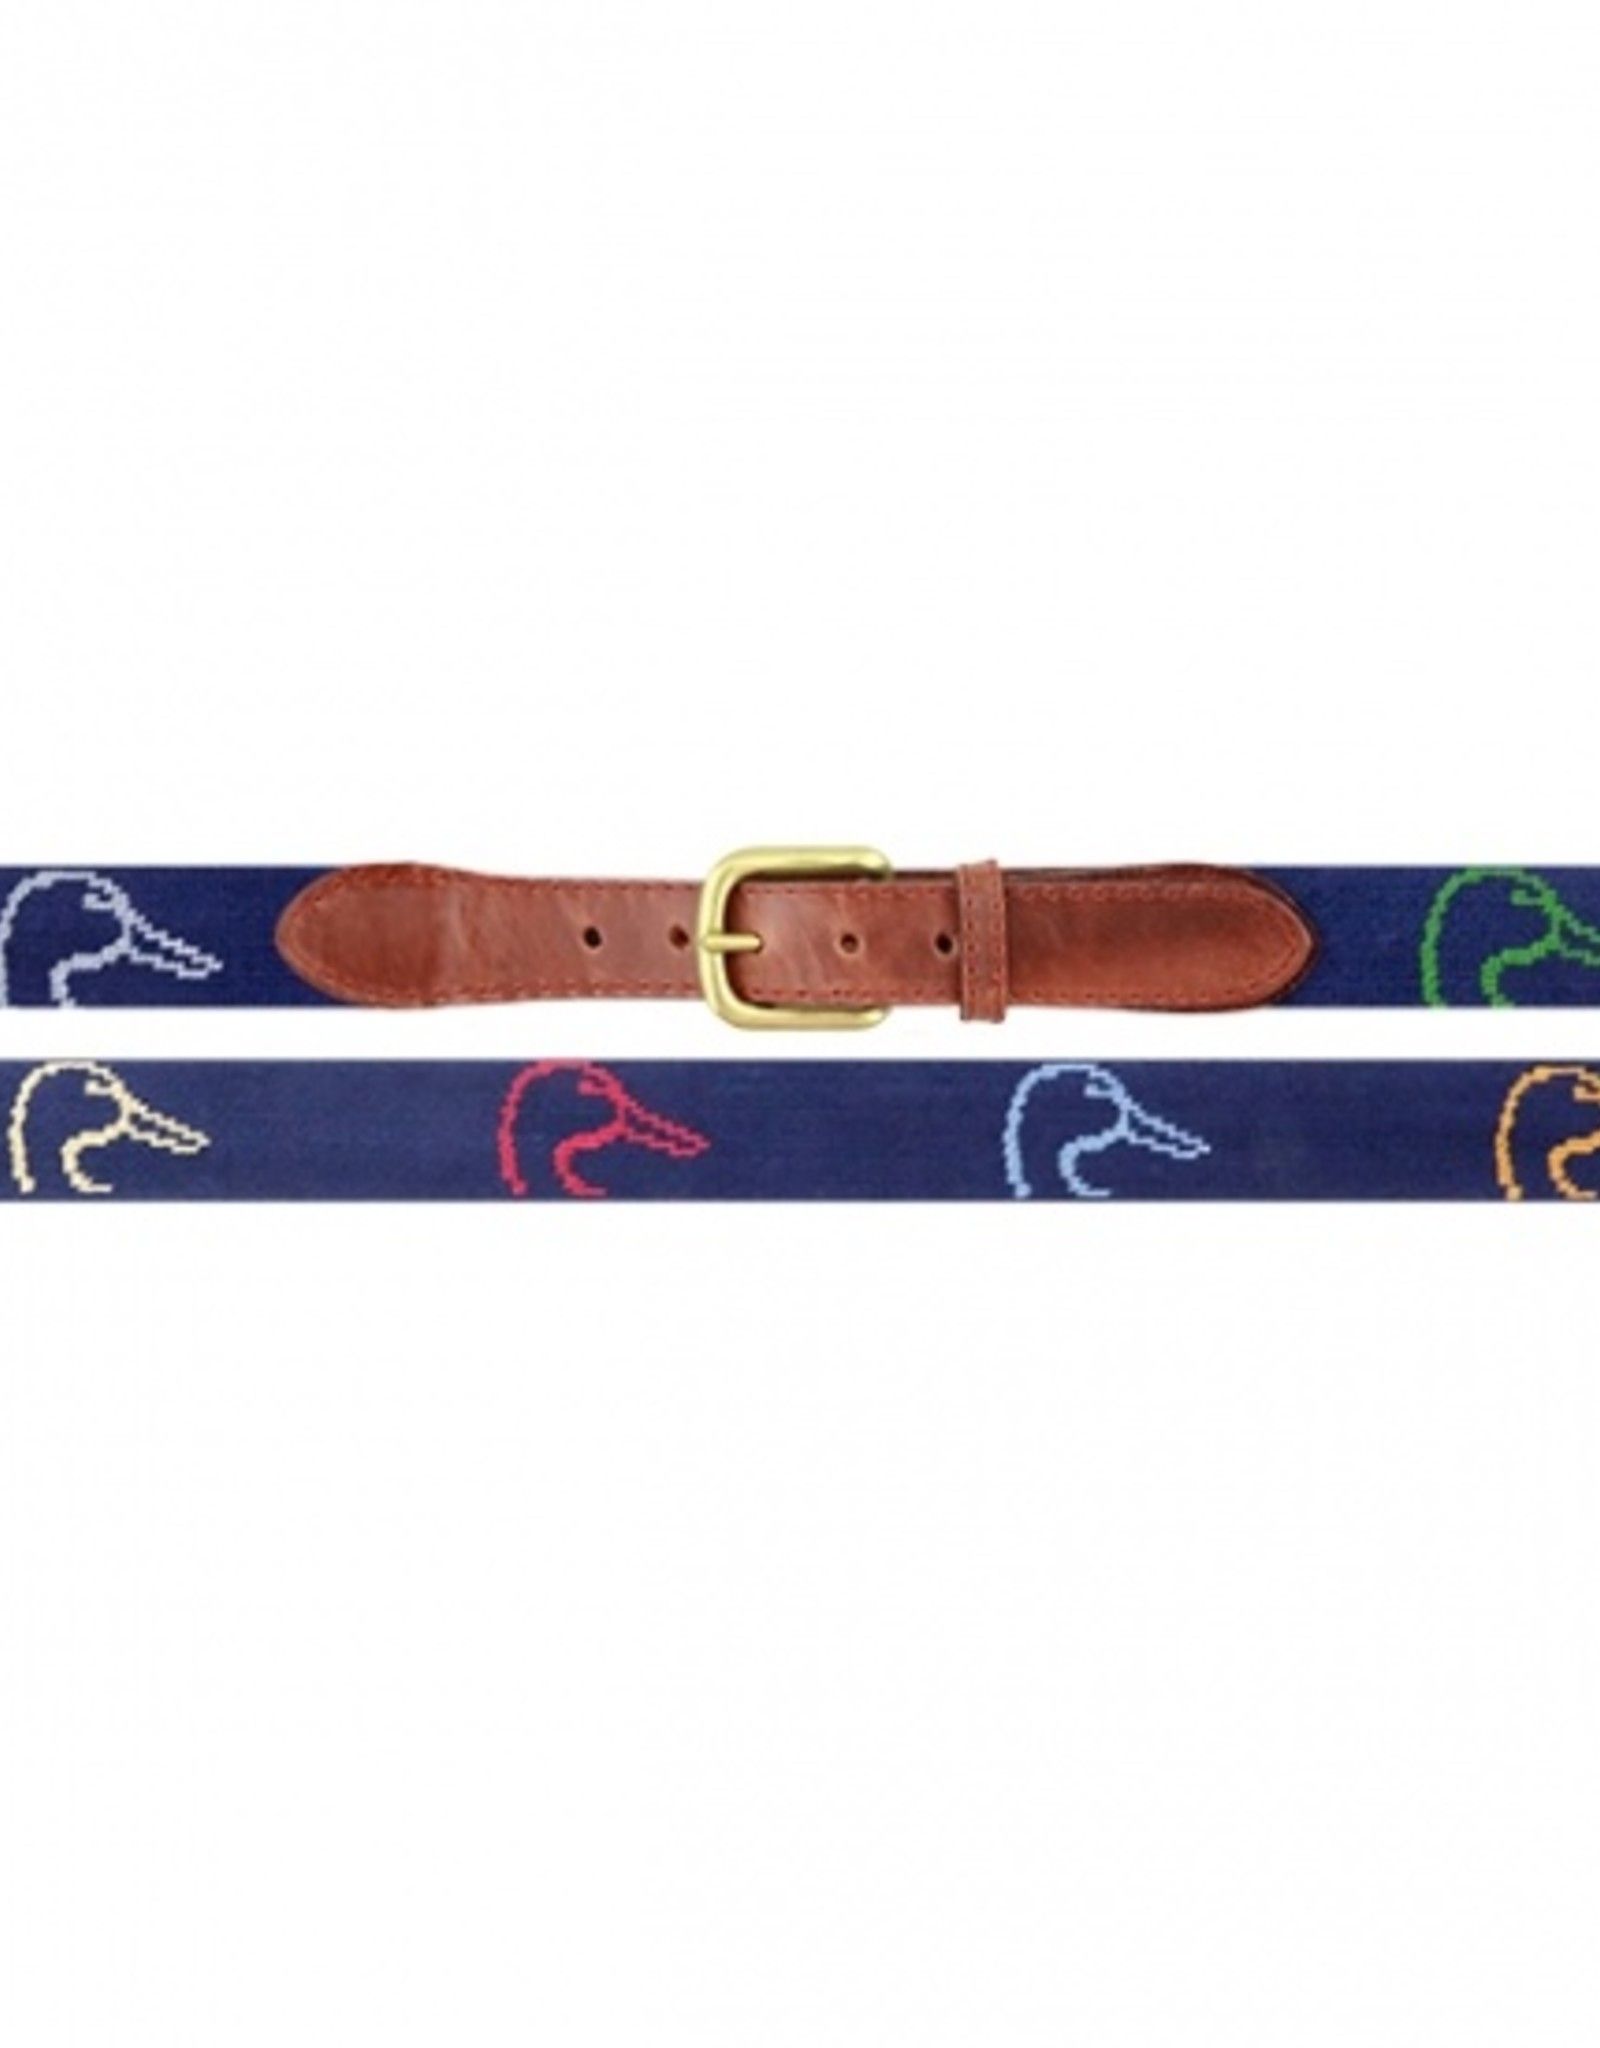 Smathers and Branson   Ducks Unlimited Belt